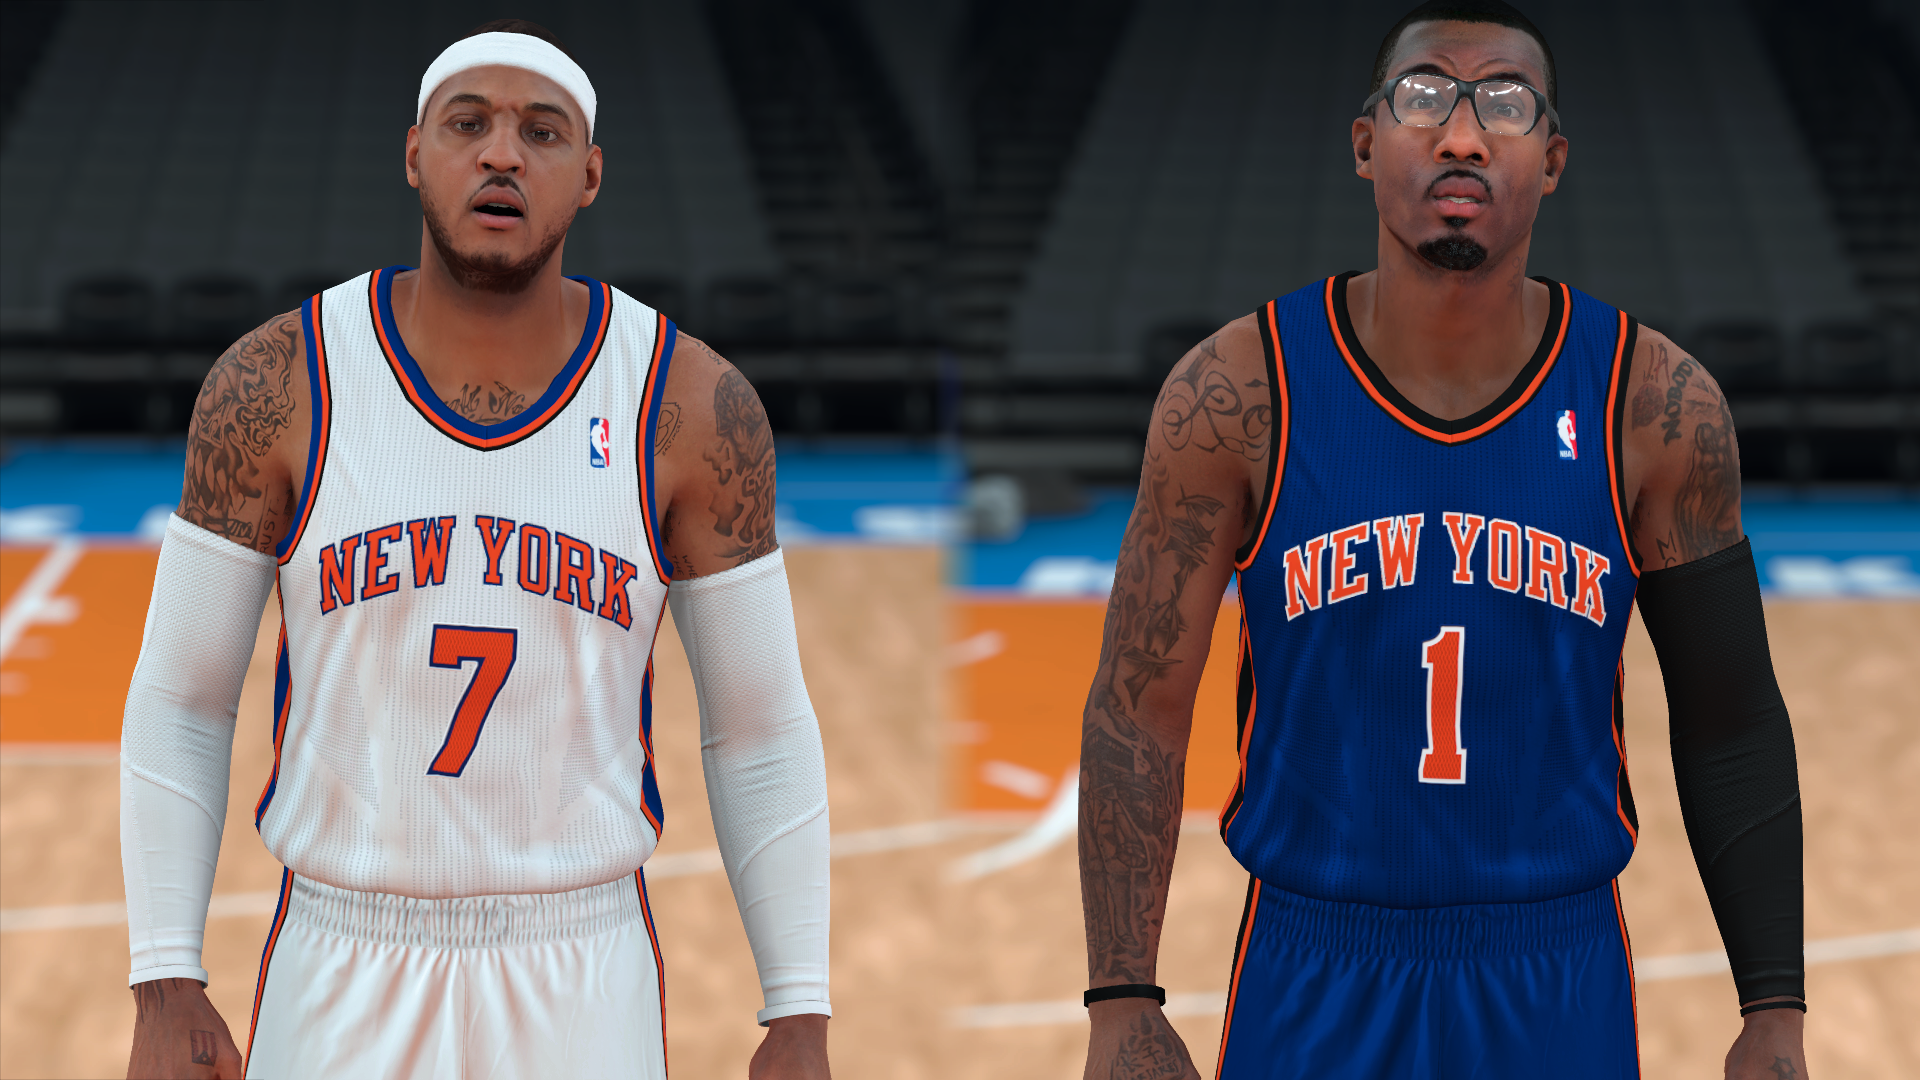 374ec842e NLSC Forum • Downloads - 2011-2012 Knicks Jerseys - PeacemanNOT